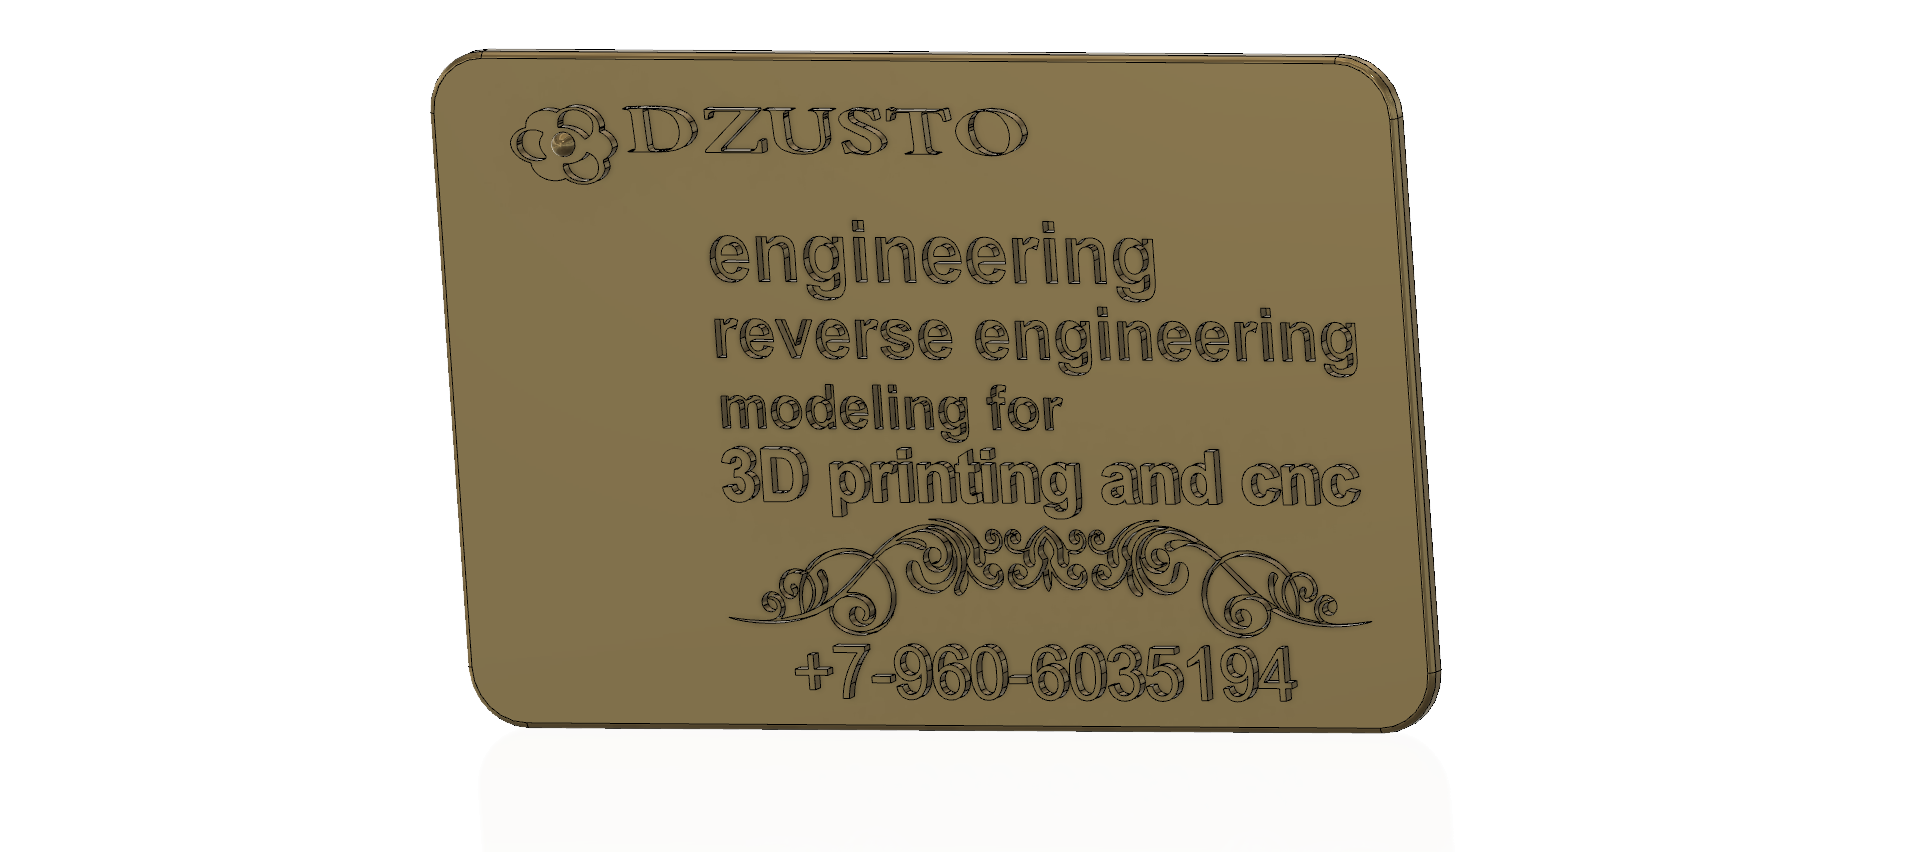 business card 01 v5-01.png Download free STL file Modeling product engineering reverse-engineering 3d print cnc • 3D printing design, Dzusto